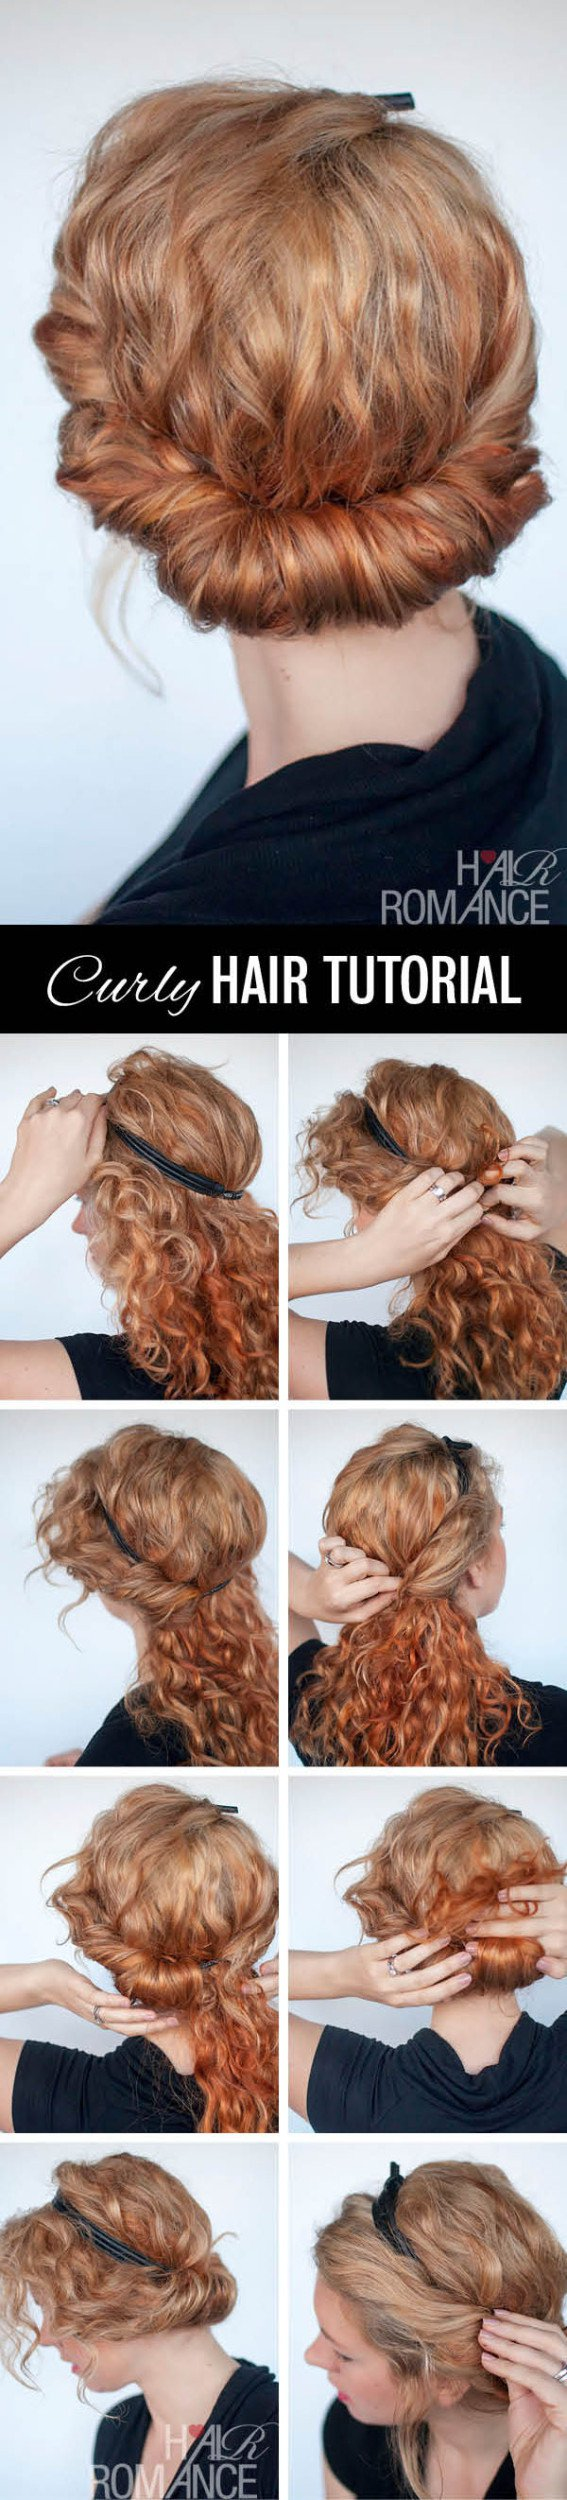 14 Simple Step By Step Tutorials For A Perfect Hairstyle In A Few